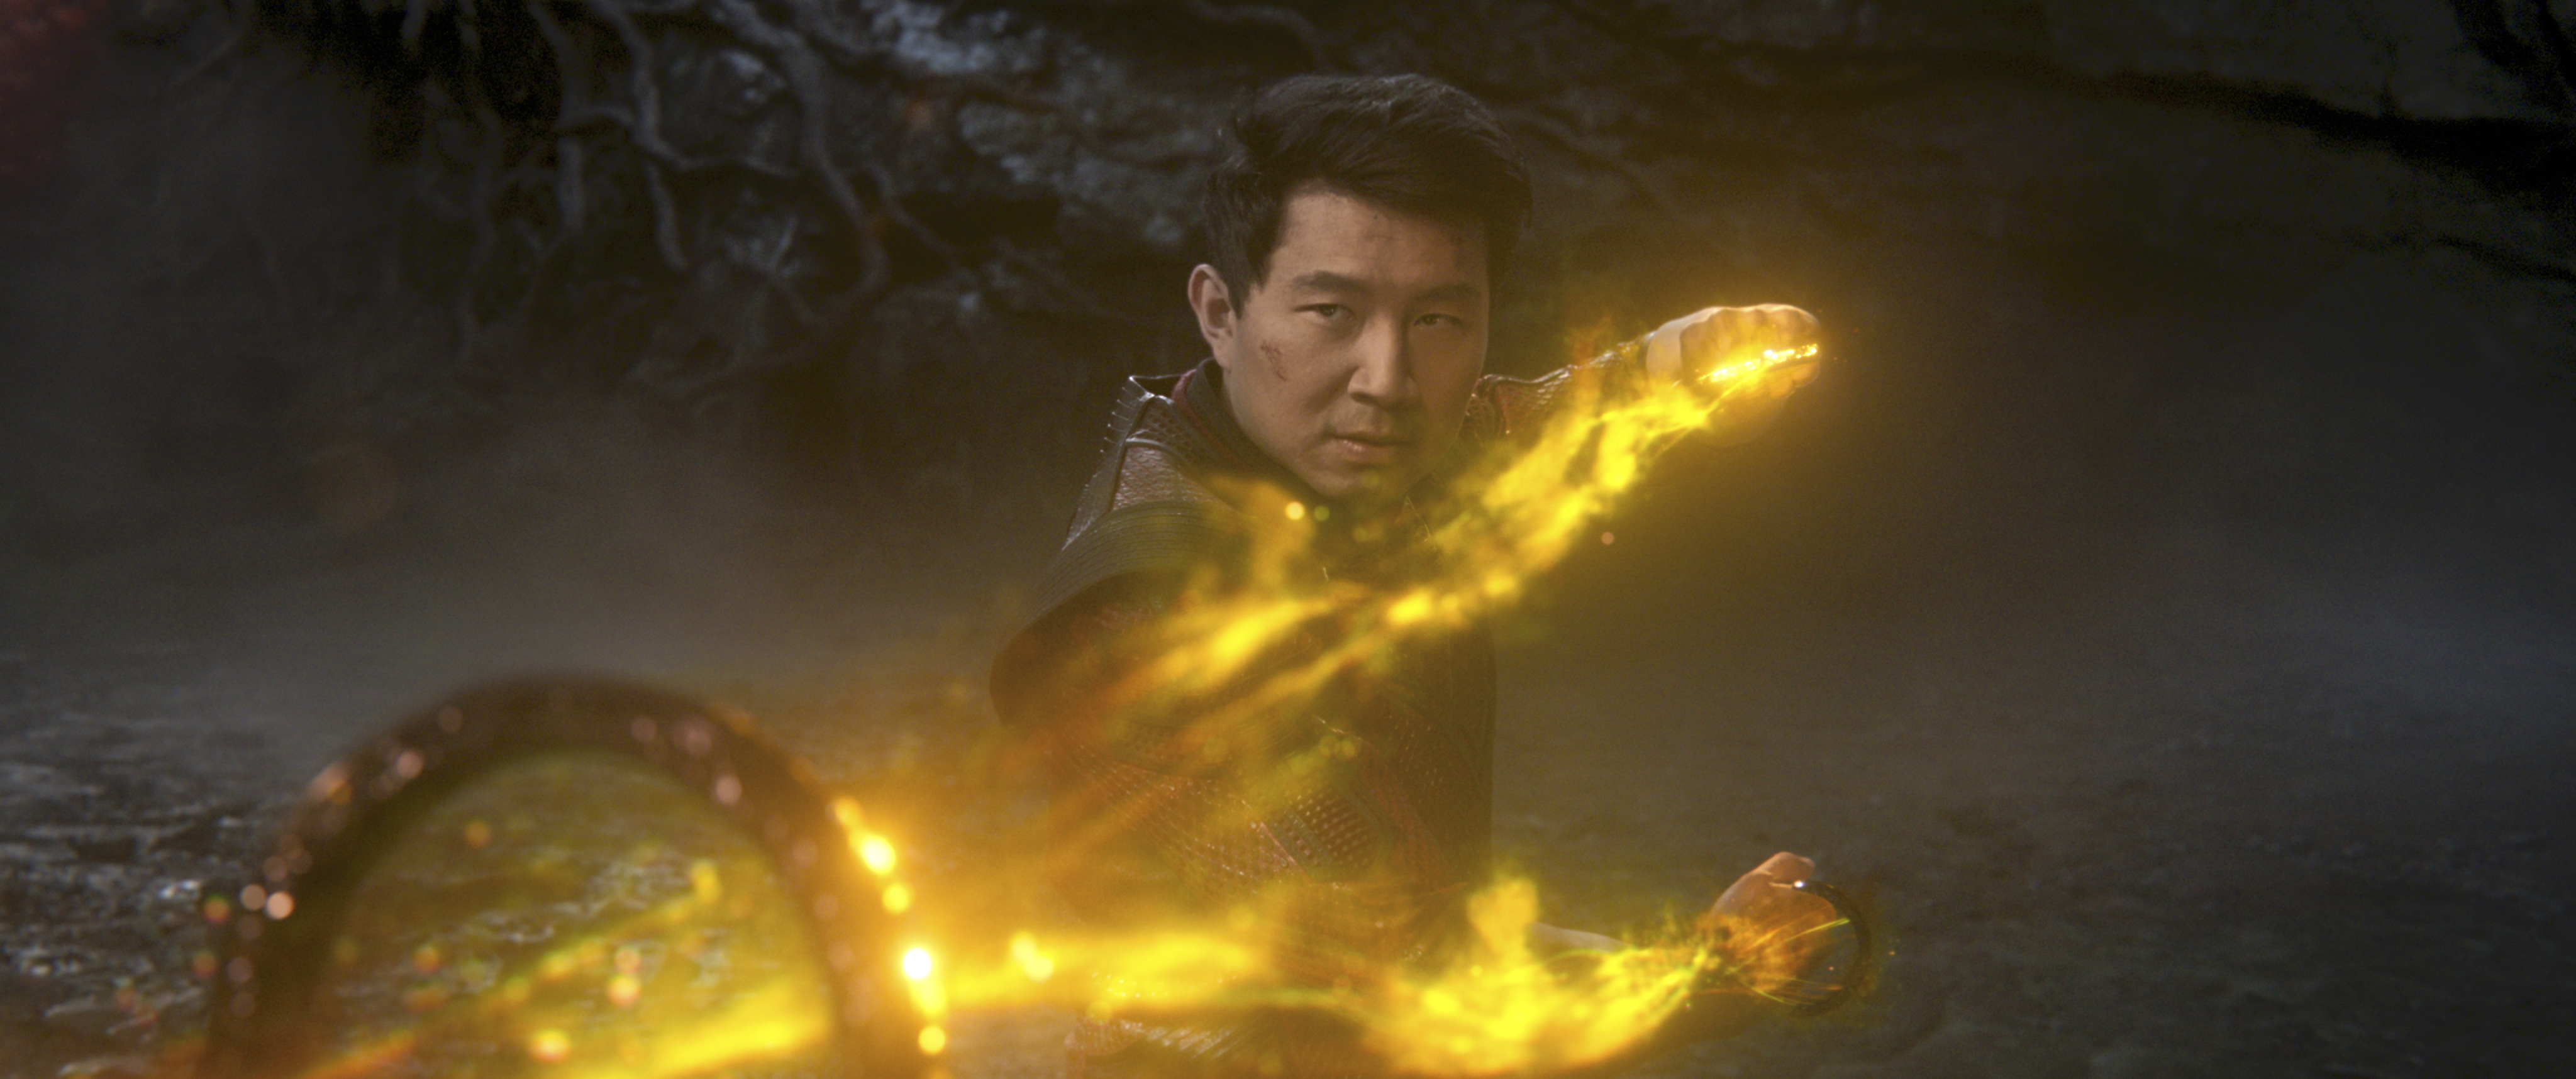 Simu Liu wields the Ten Rings, surrounded by yellow fire, as Shang-Chi in Shang-Chi and the Legend of the Ten Rings.